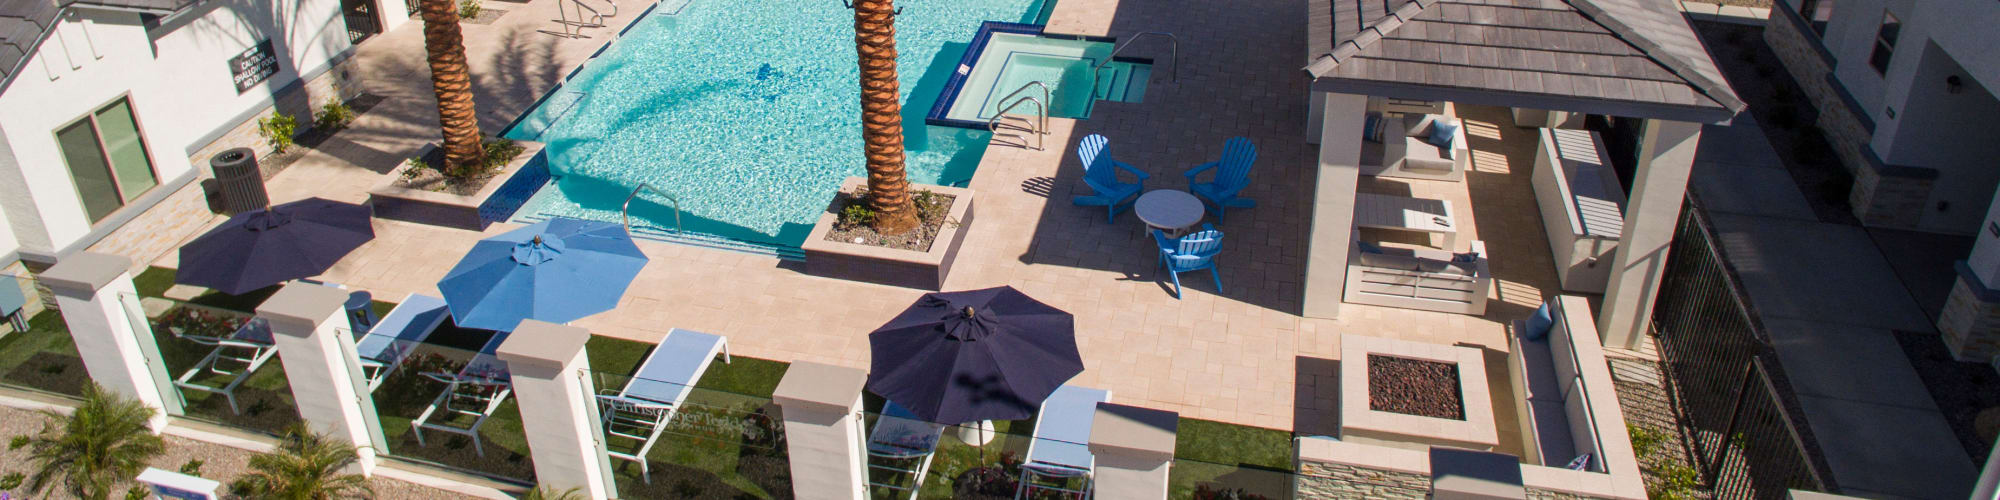 Apply to live at Christopher Todd Communities on Mountain View in Surprise, Arizona